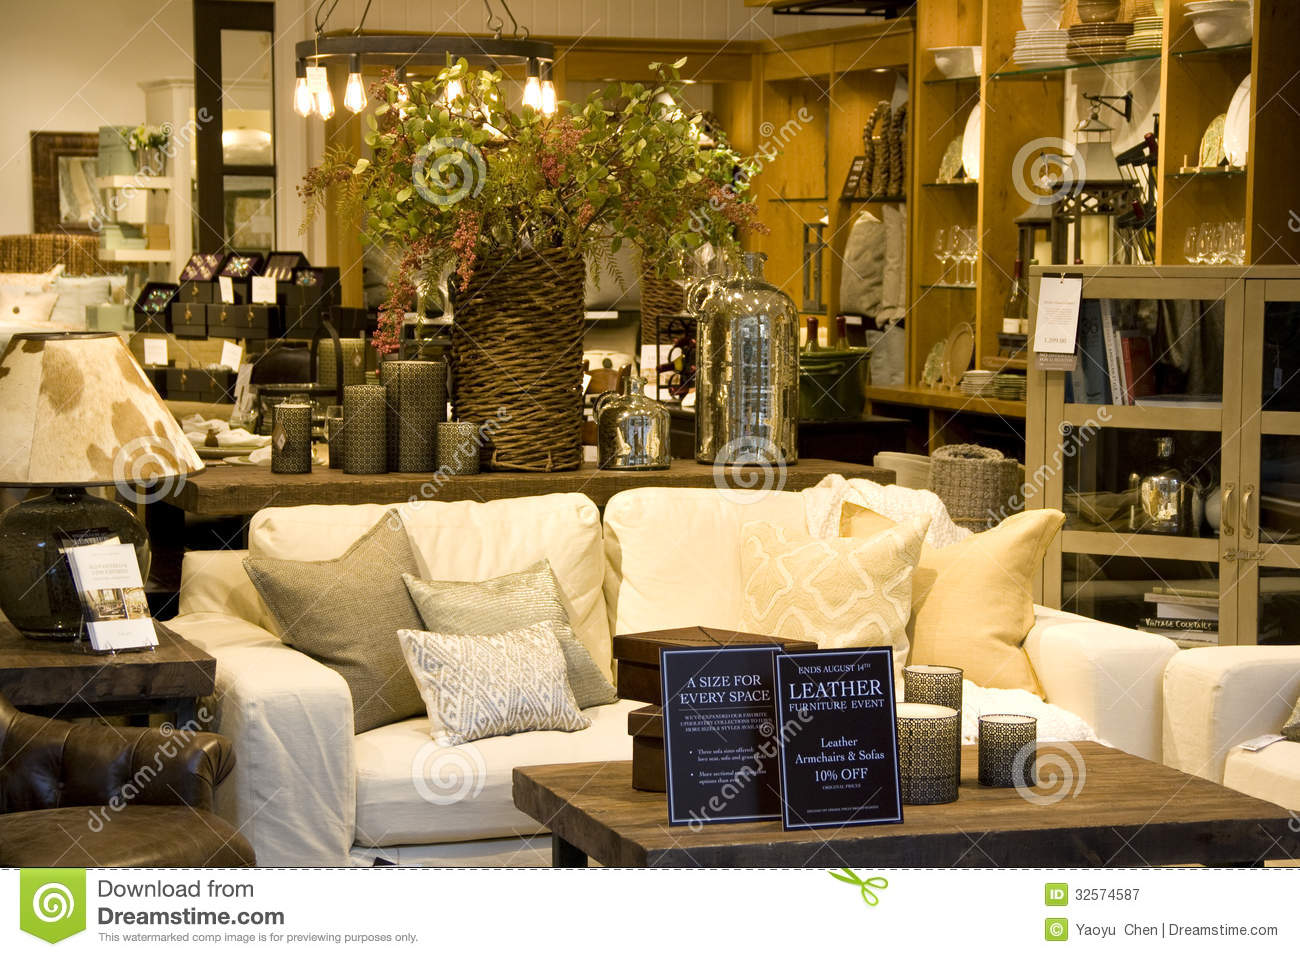 furniture home decor store royalty free stock photography - Home Decor Furniture